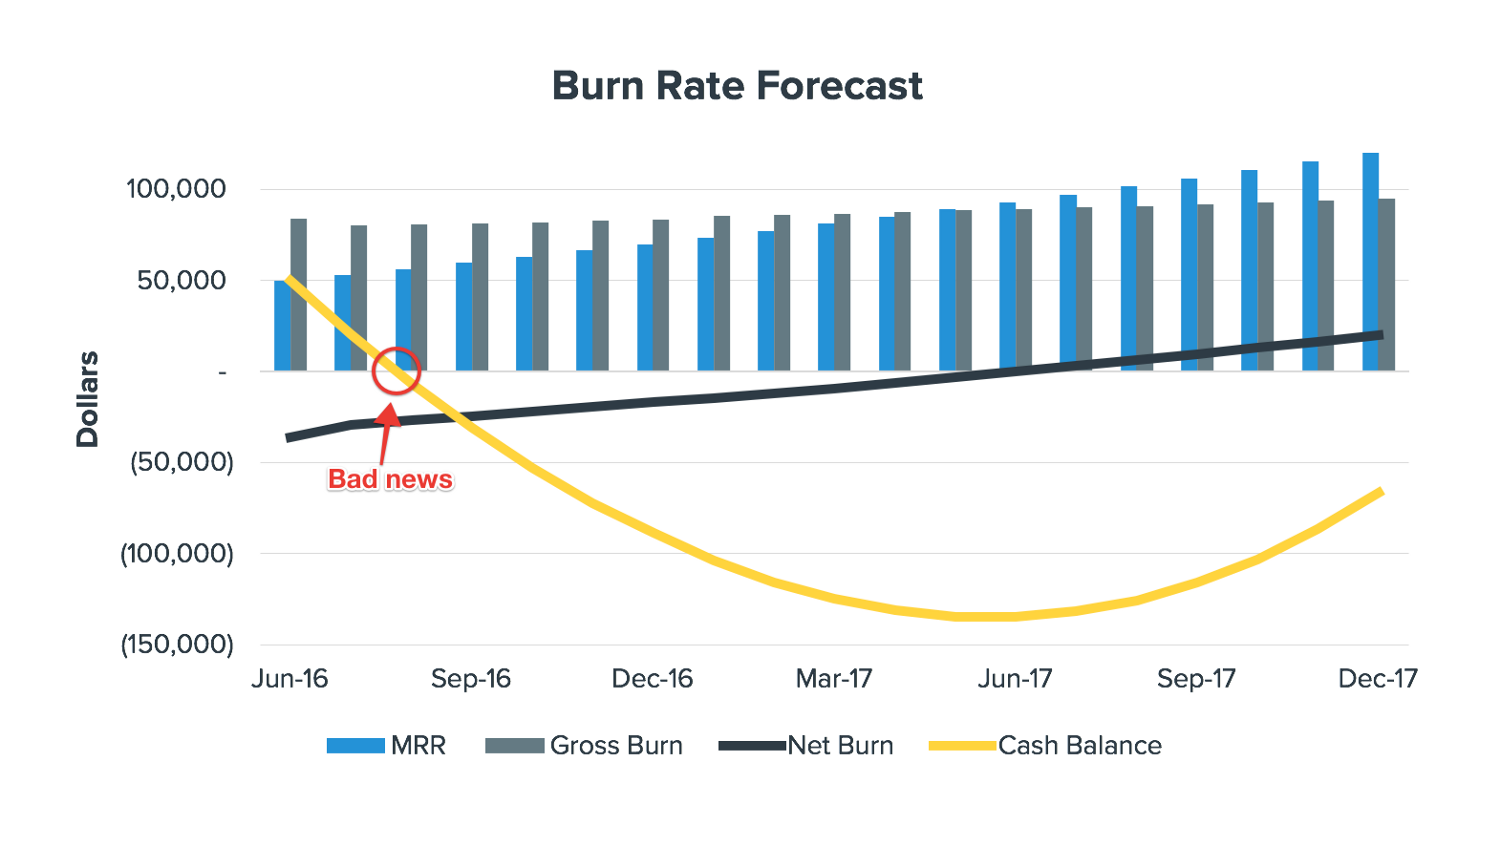 Burn Rate Forecast